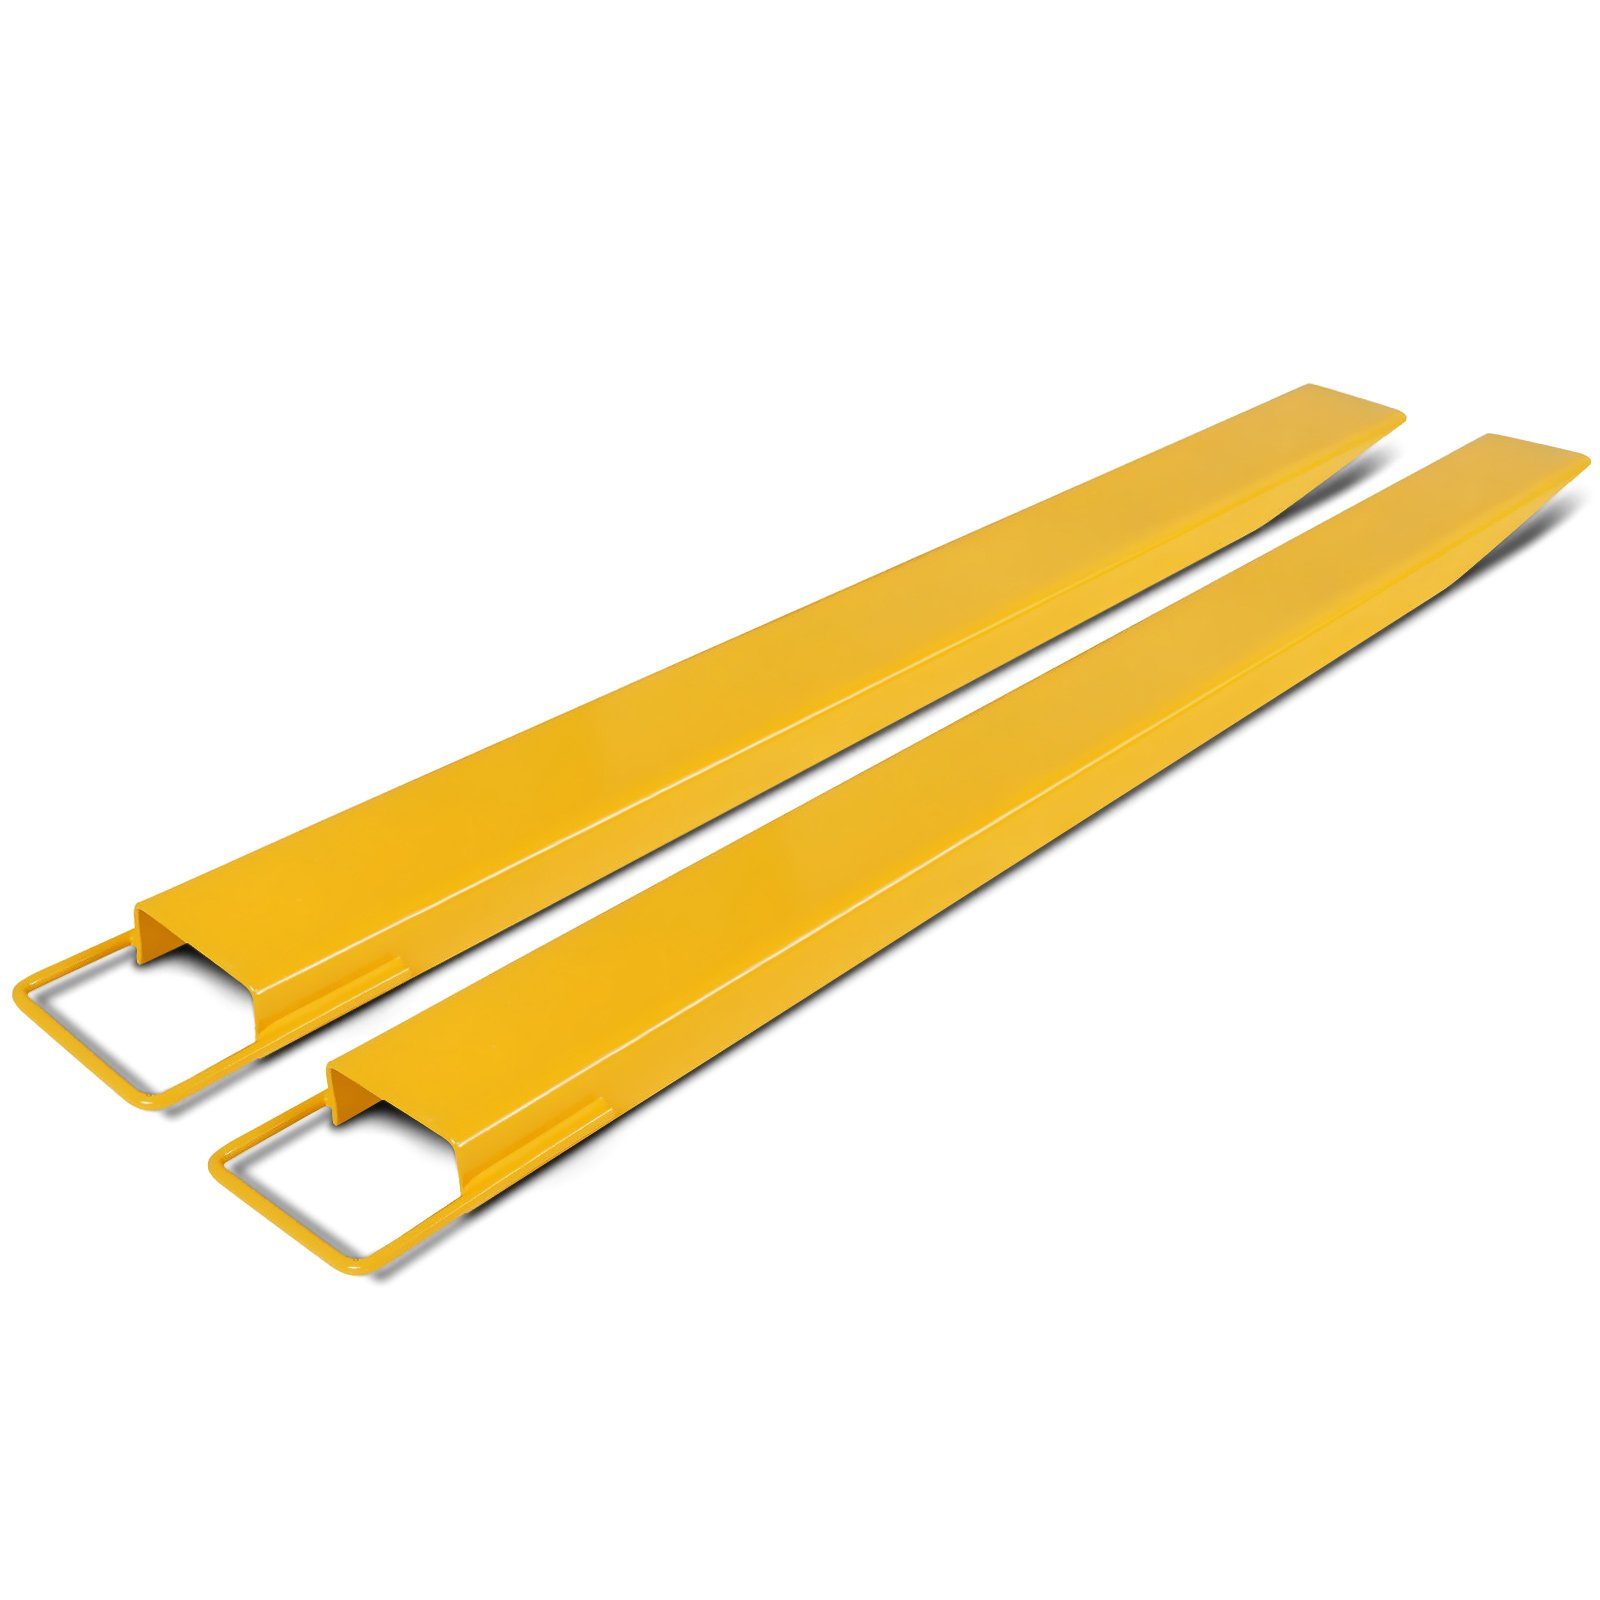 Happybuy Pallet Fork Extensions 84 Inch Length 6 Inch Width Forklift Extensions for Forklift 2 Inch Thickness Fork Extensions Yellow